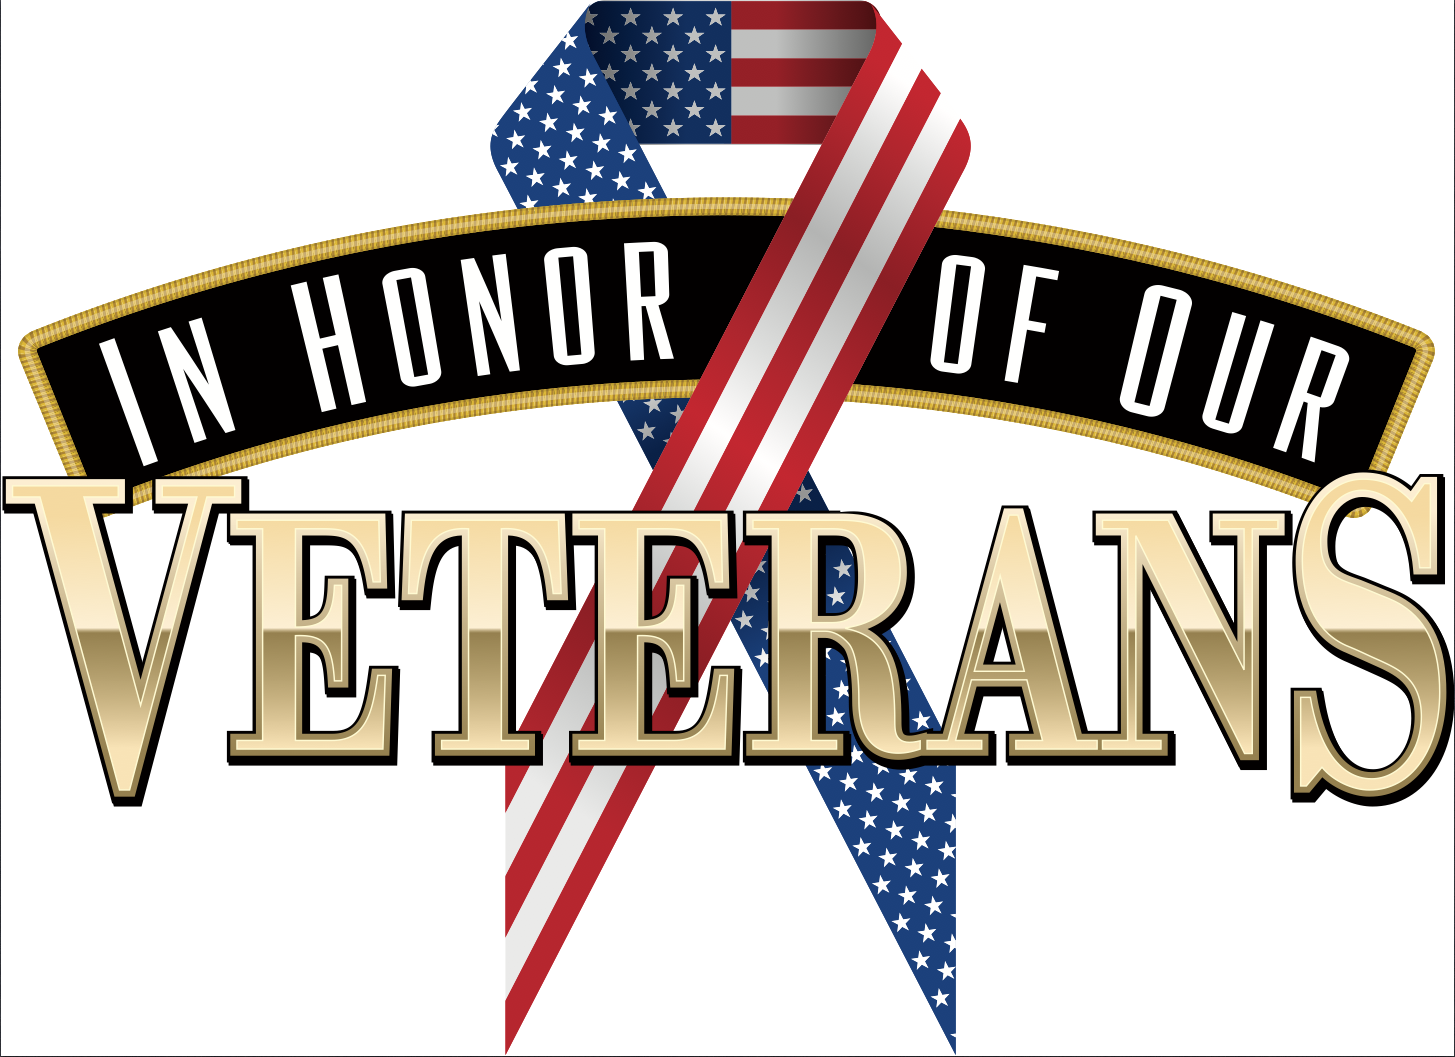 Veterans Day Clipart Images.